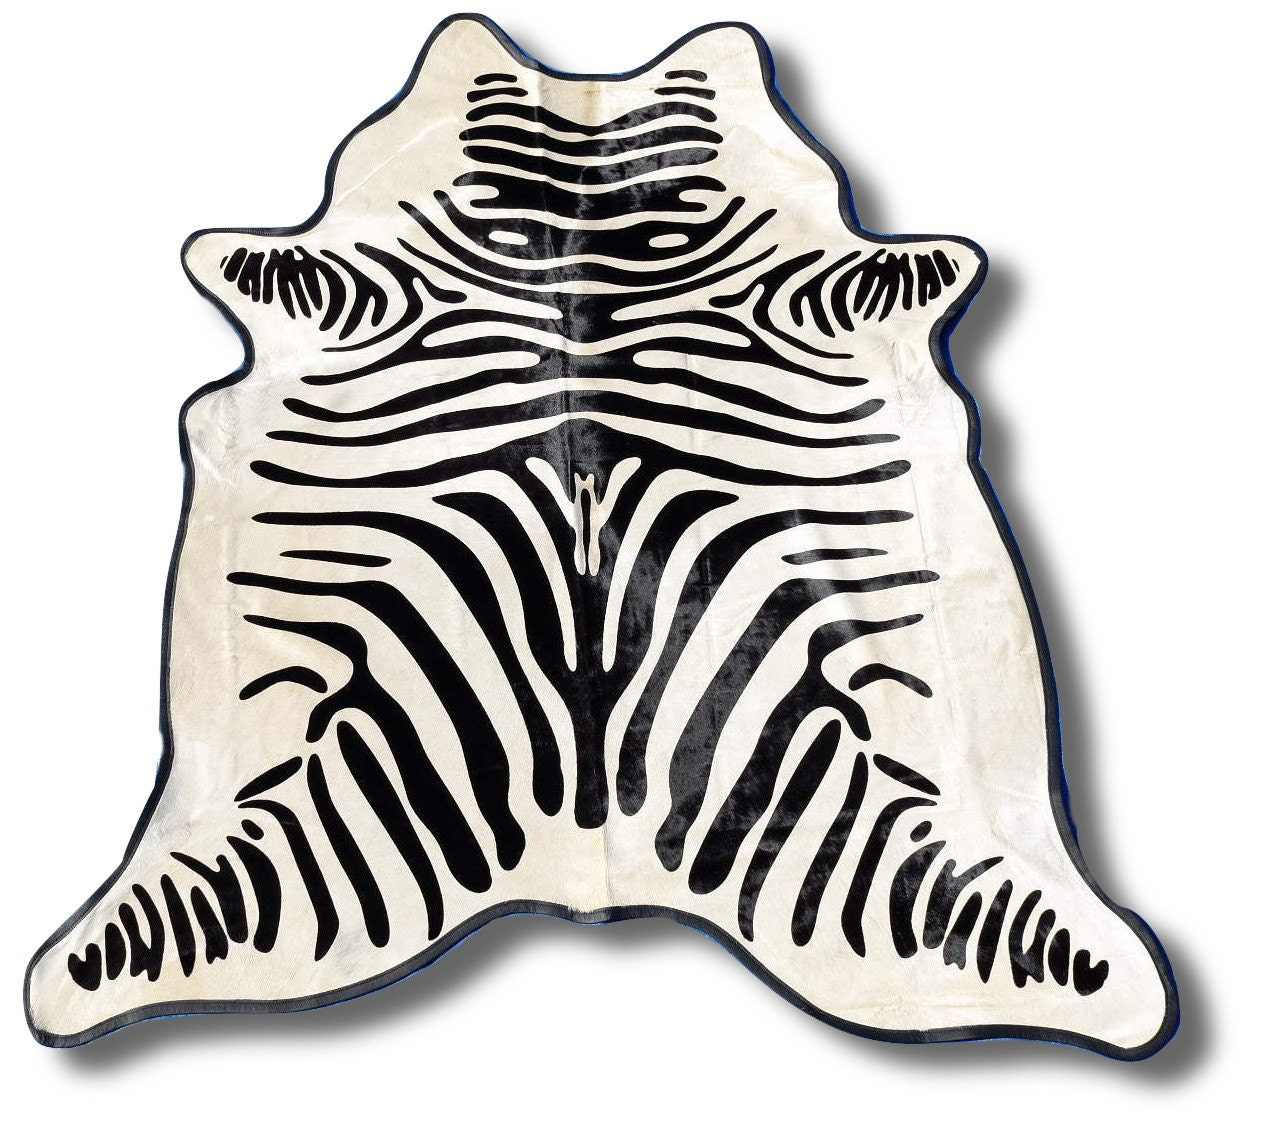 H-766 Pefect Zebra Cowhide Rug With Leather Border Black